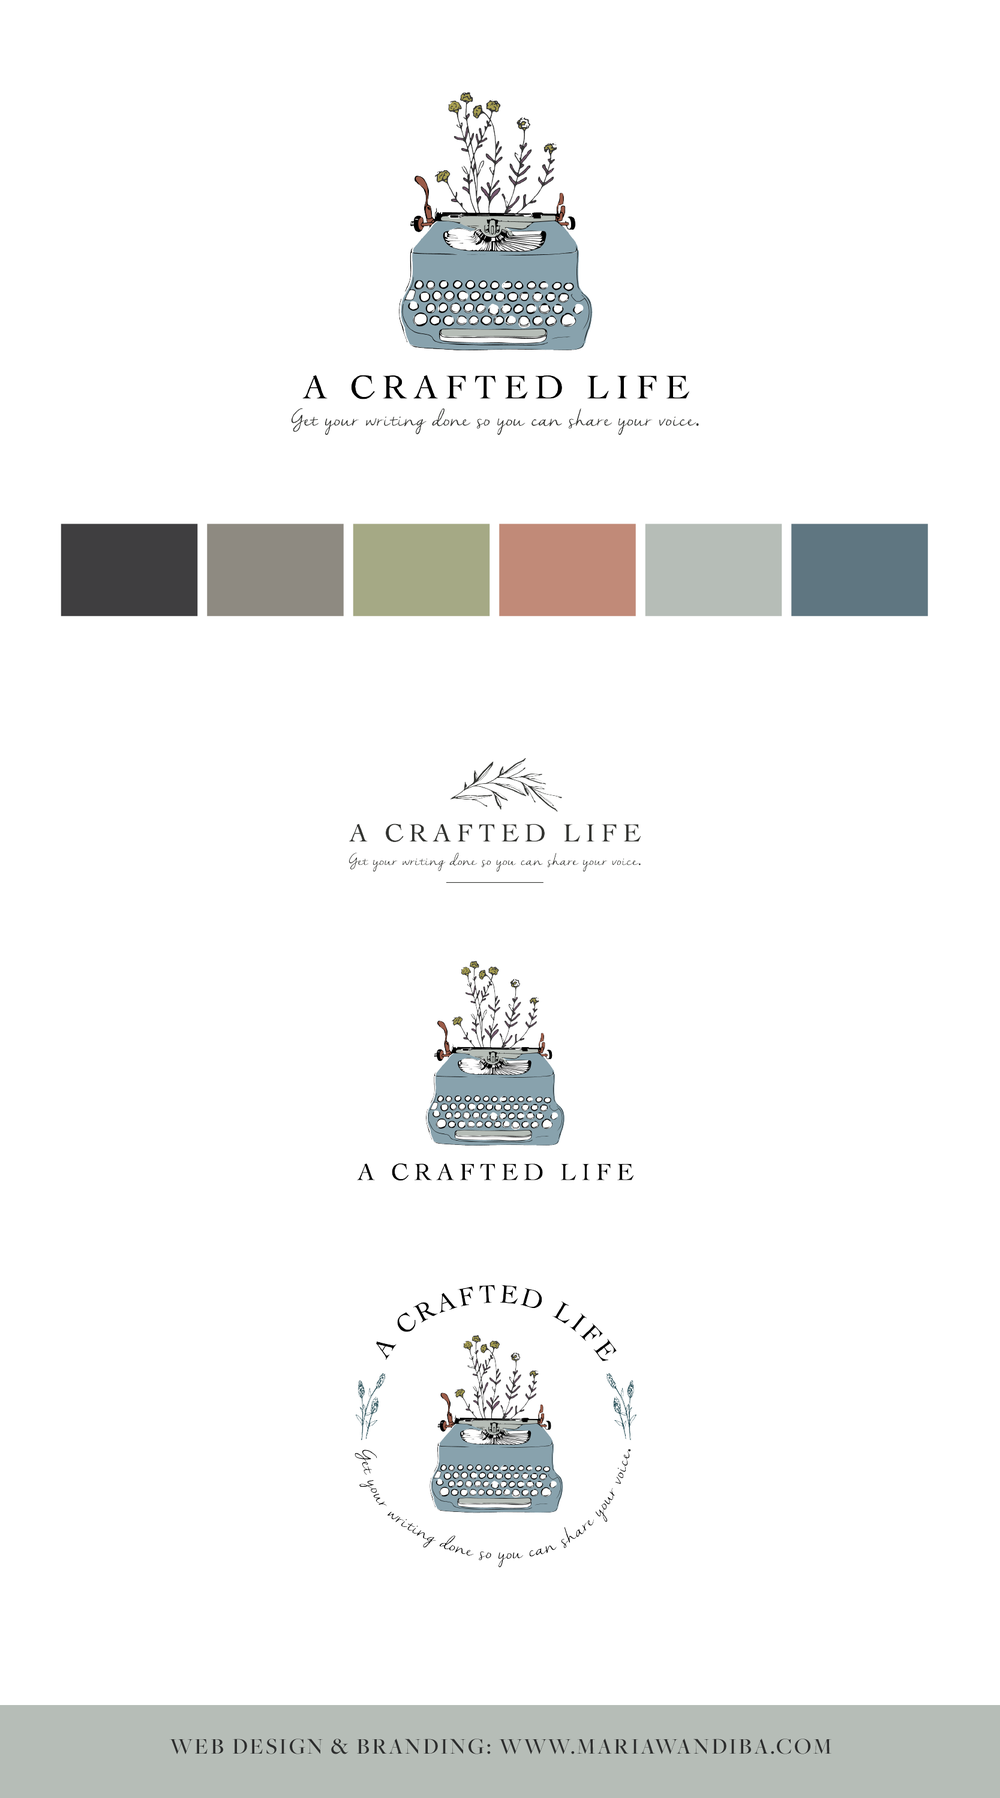 A crafted life Branding by Maria Wandiba